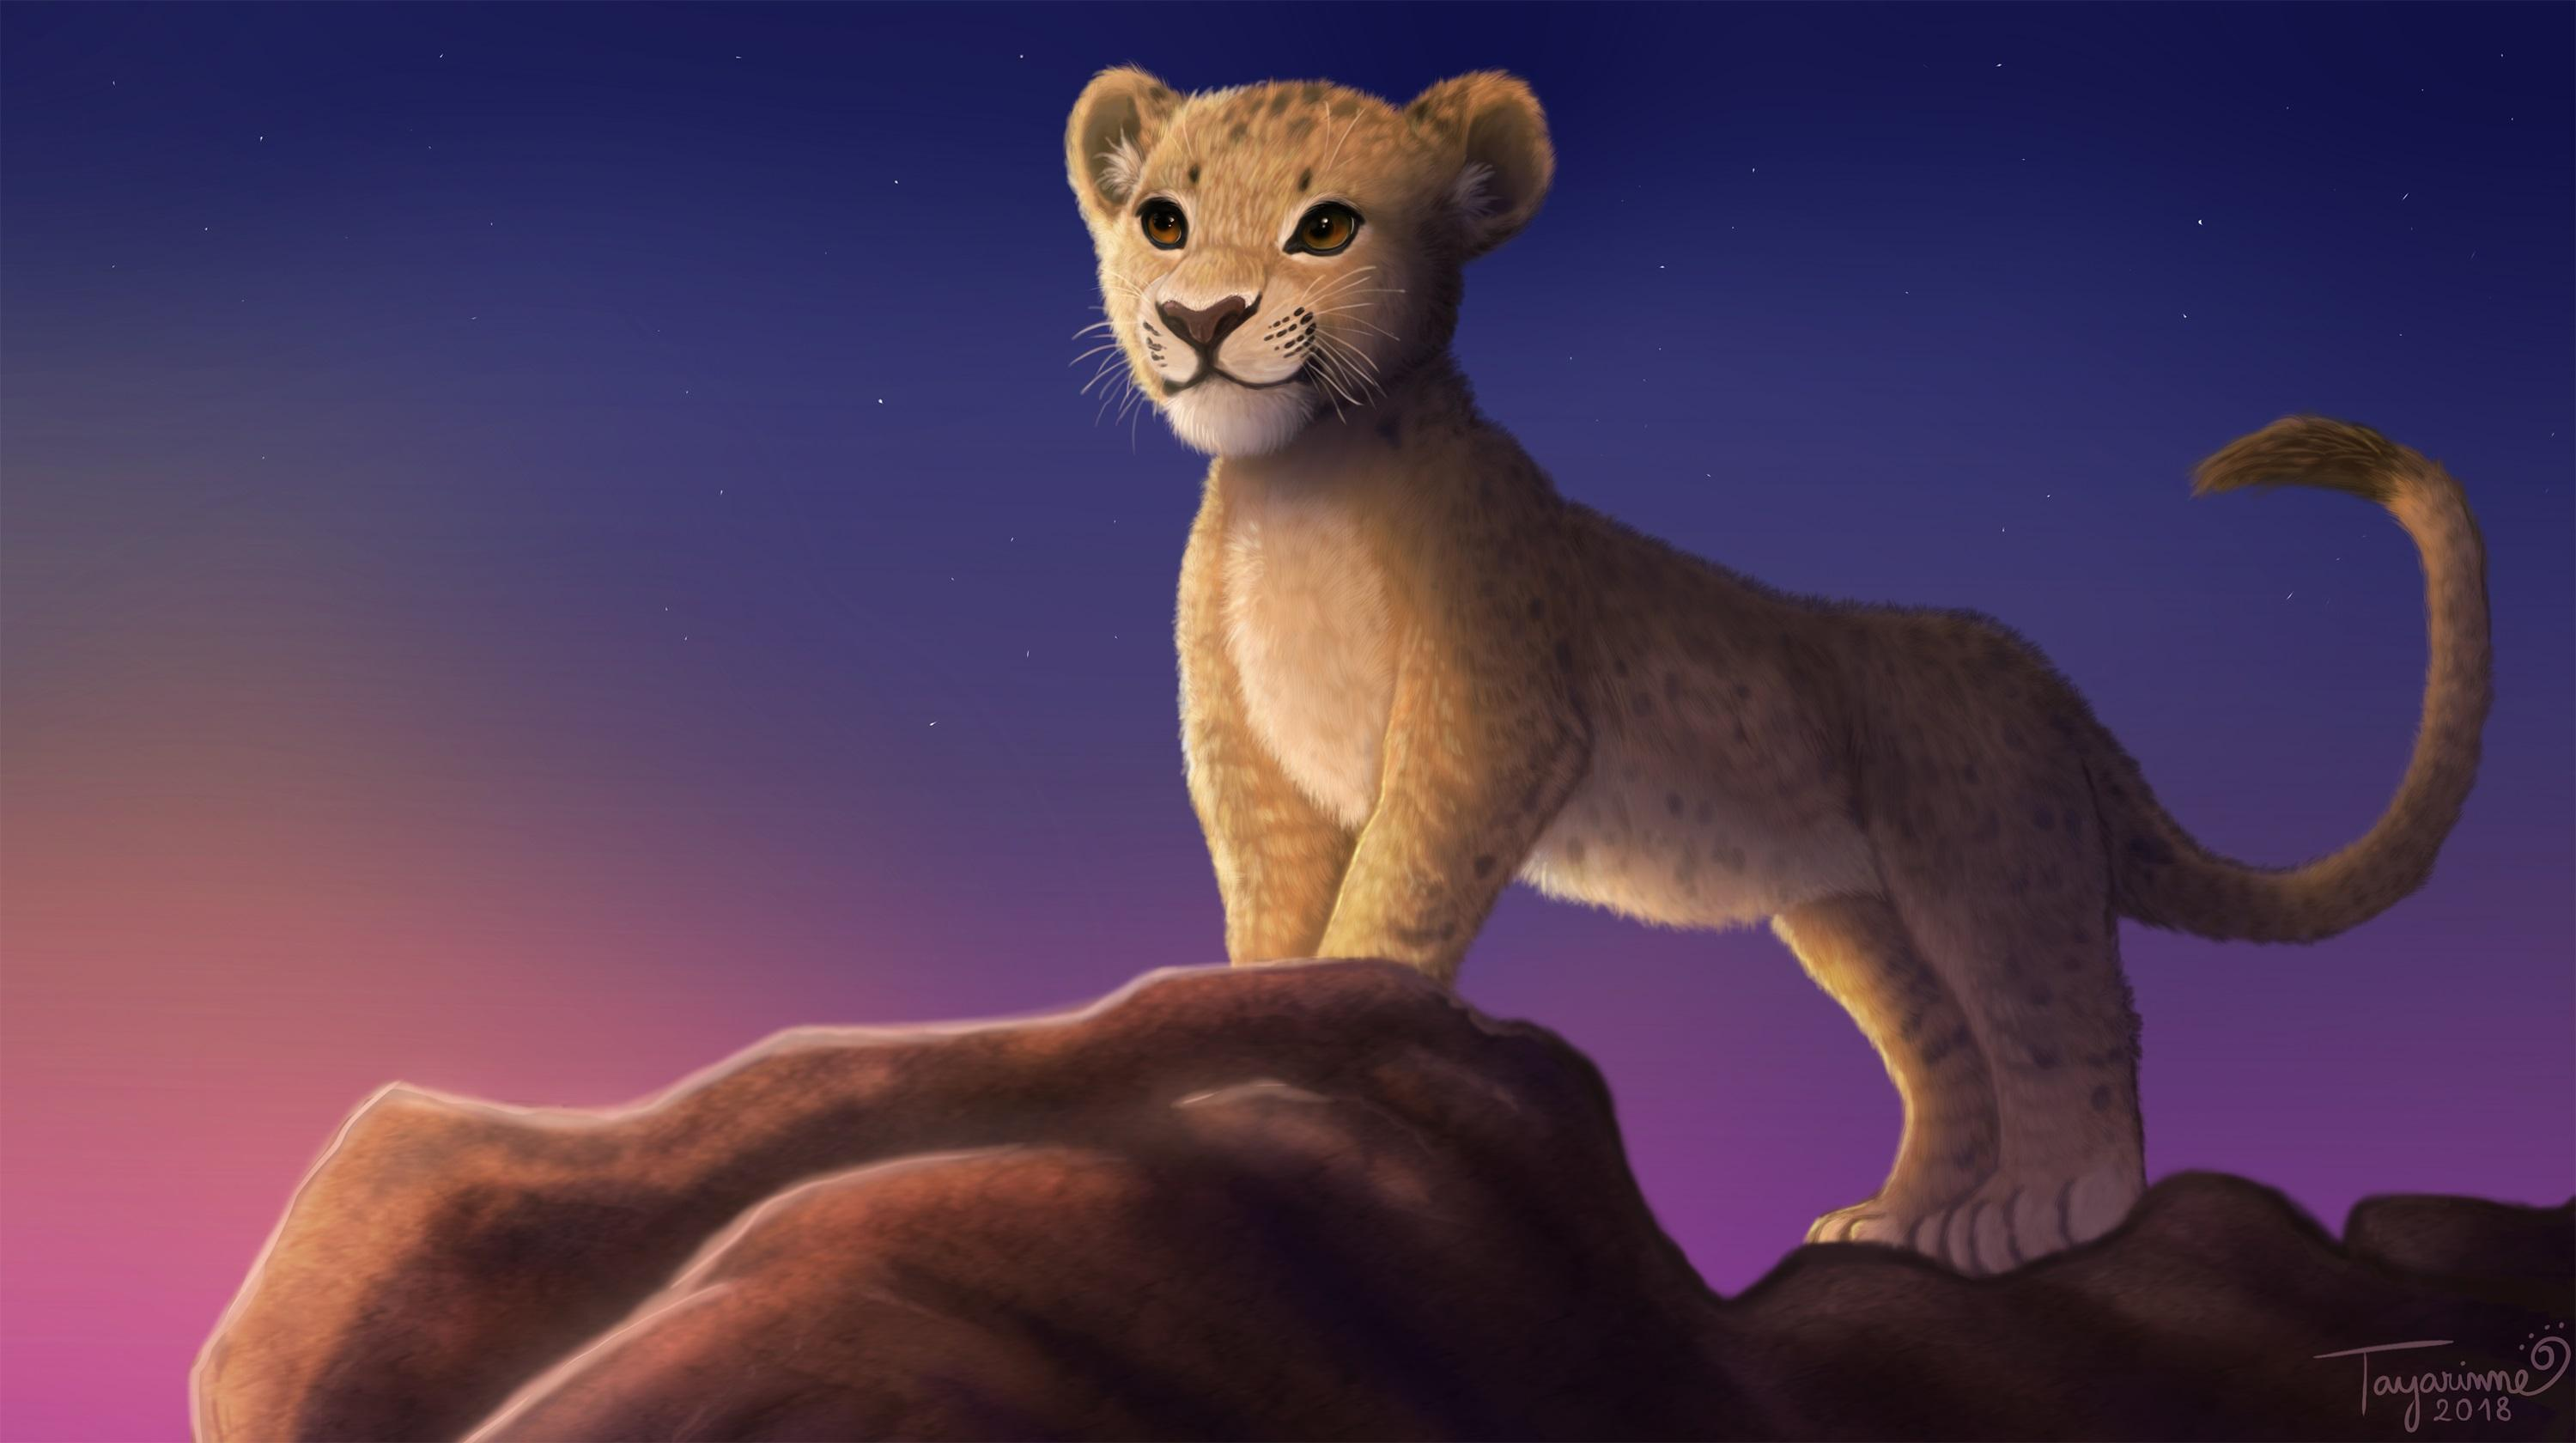 The Lion King 2019 Wallpapers - Wallpaper Cave